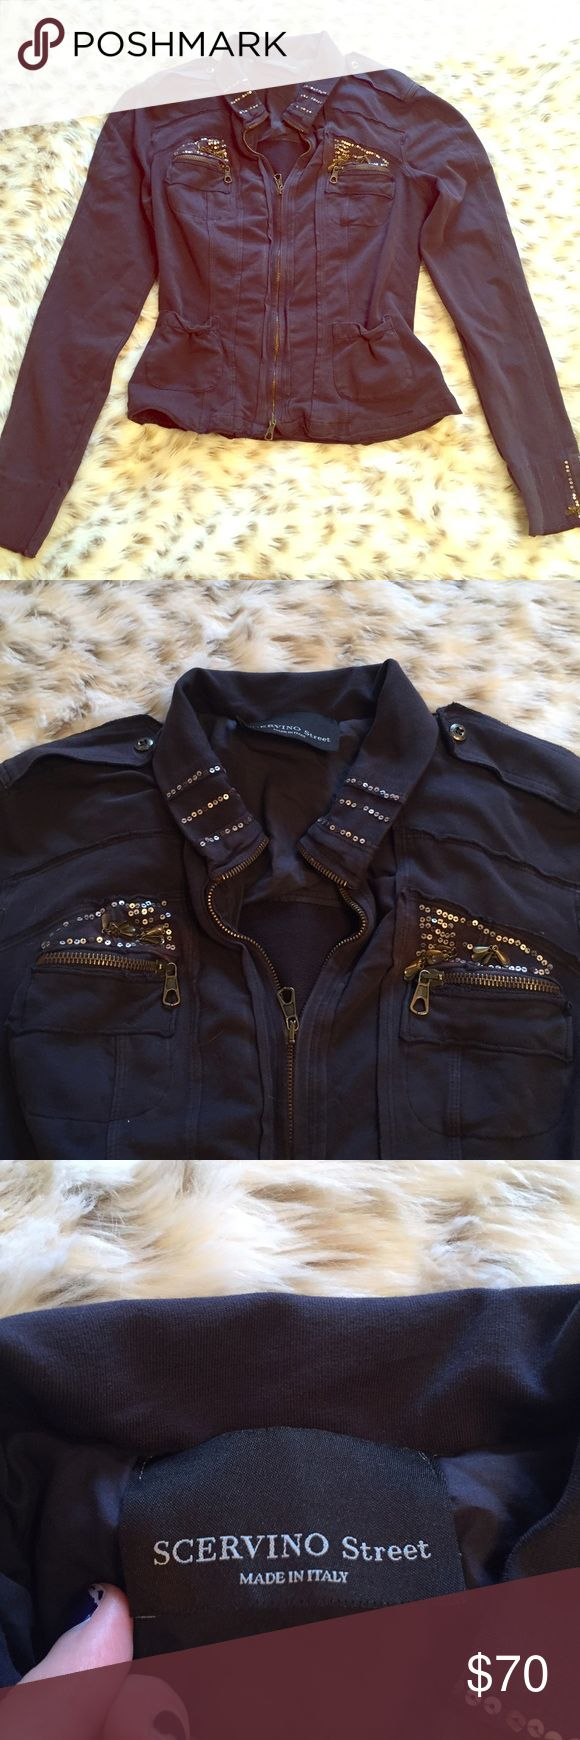 Scervino Street Sequin Full Zip Jacket Scervino Street made in Italy sequin jacket! Size small! Adorable military style ! No flaws! So cute and comfy! One of my favorites! Ermanno Scervino Jackets & Coats